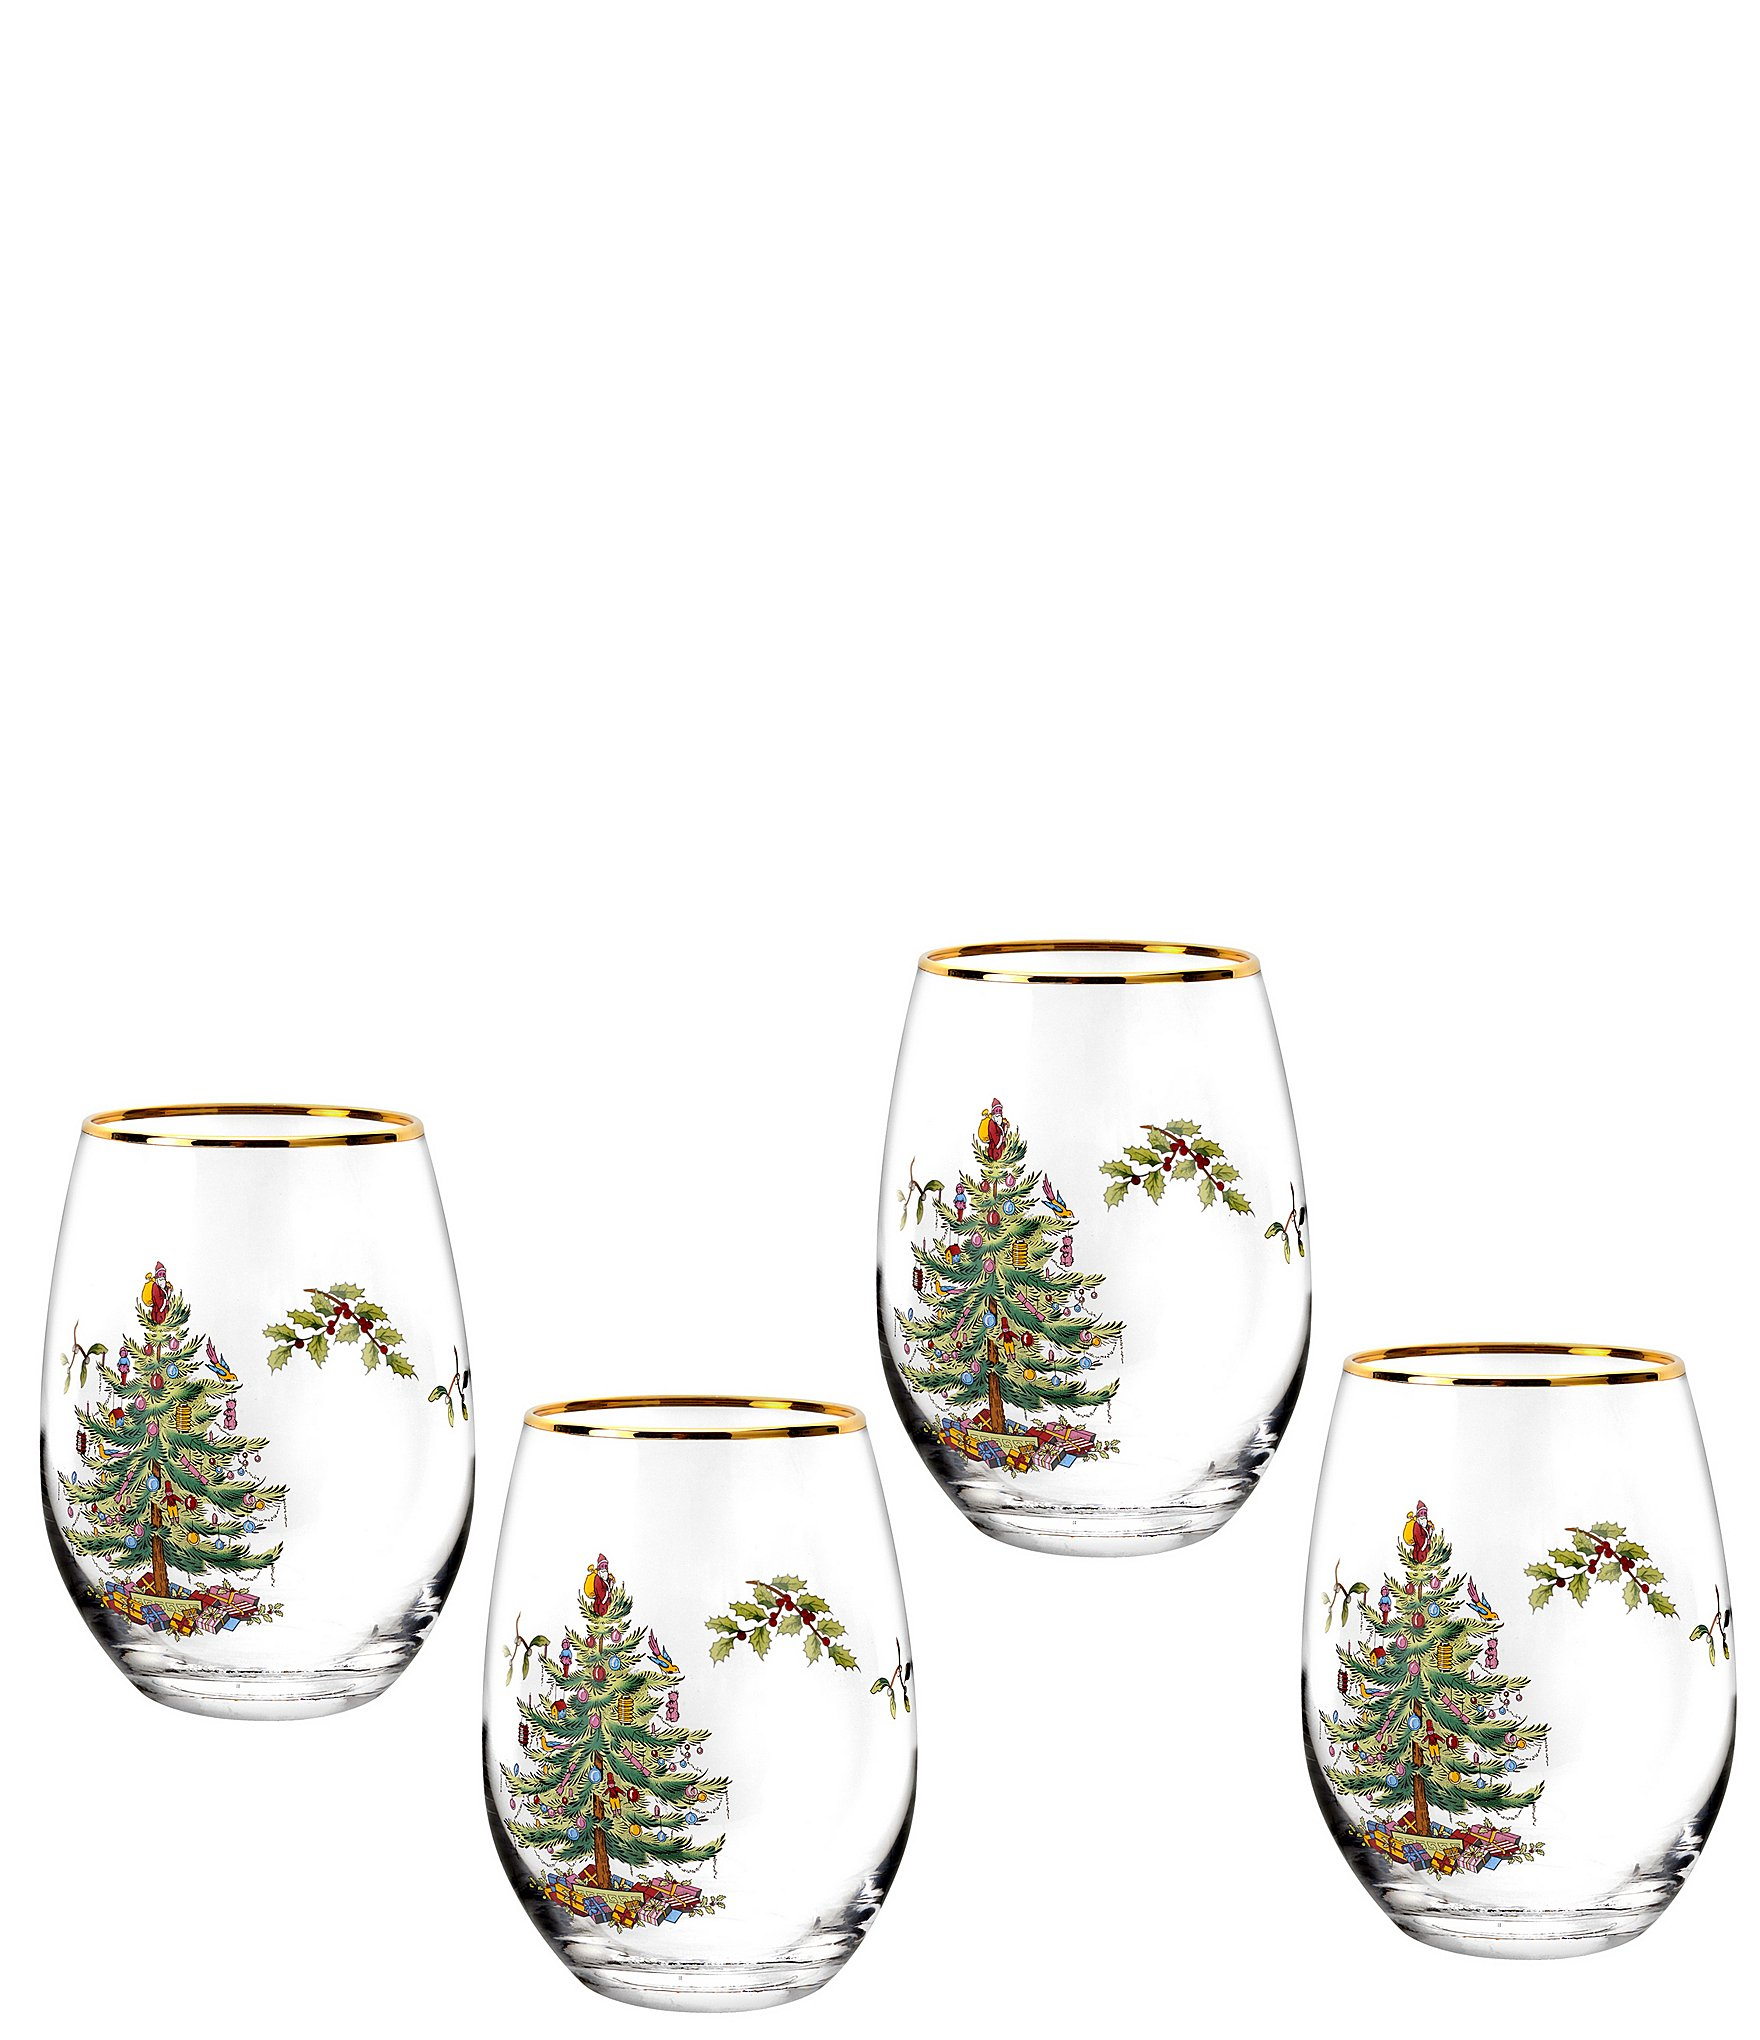 Spode Christmas Tree China Sale: Spode Christmas Tree 2019 Stemless Wine Glass